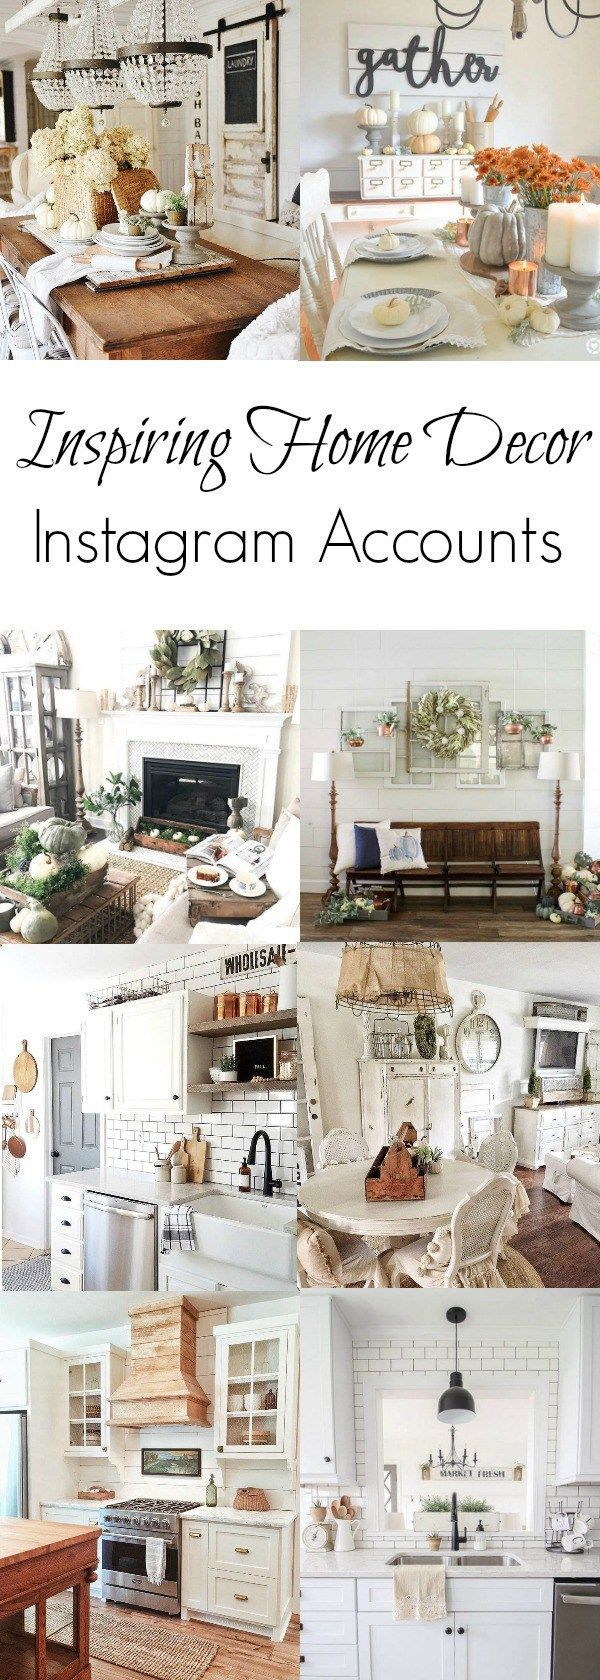 10 inspiring home decor Instagram accounts with farmhouse and vintage charm. If you are looking for inspiration, these are accounts to follow.